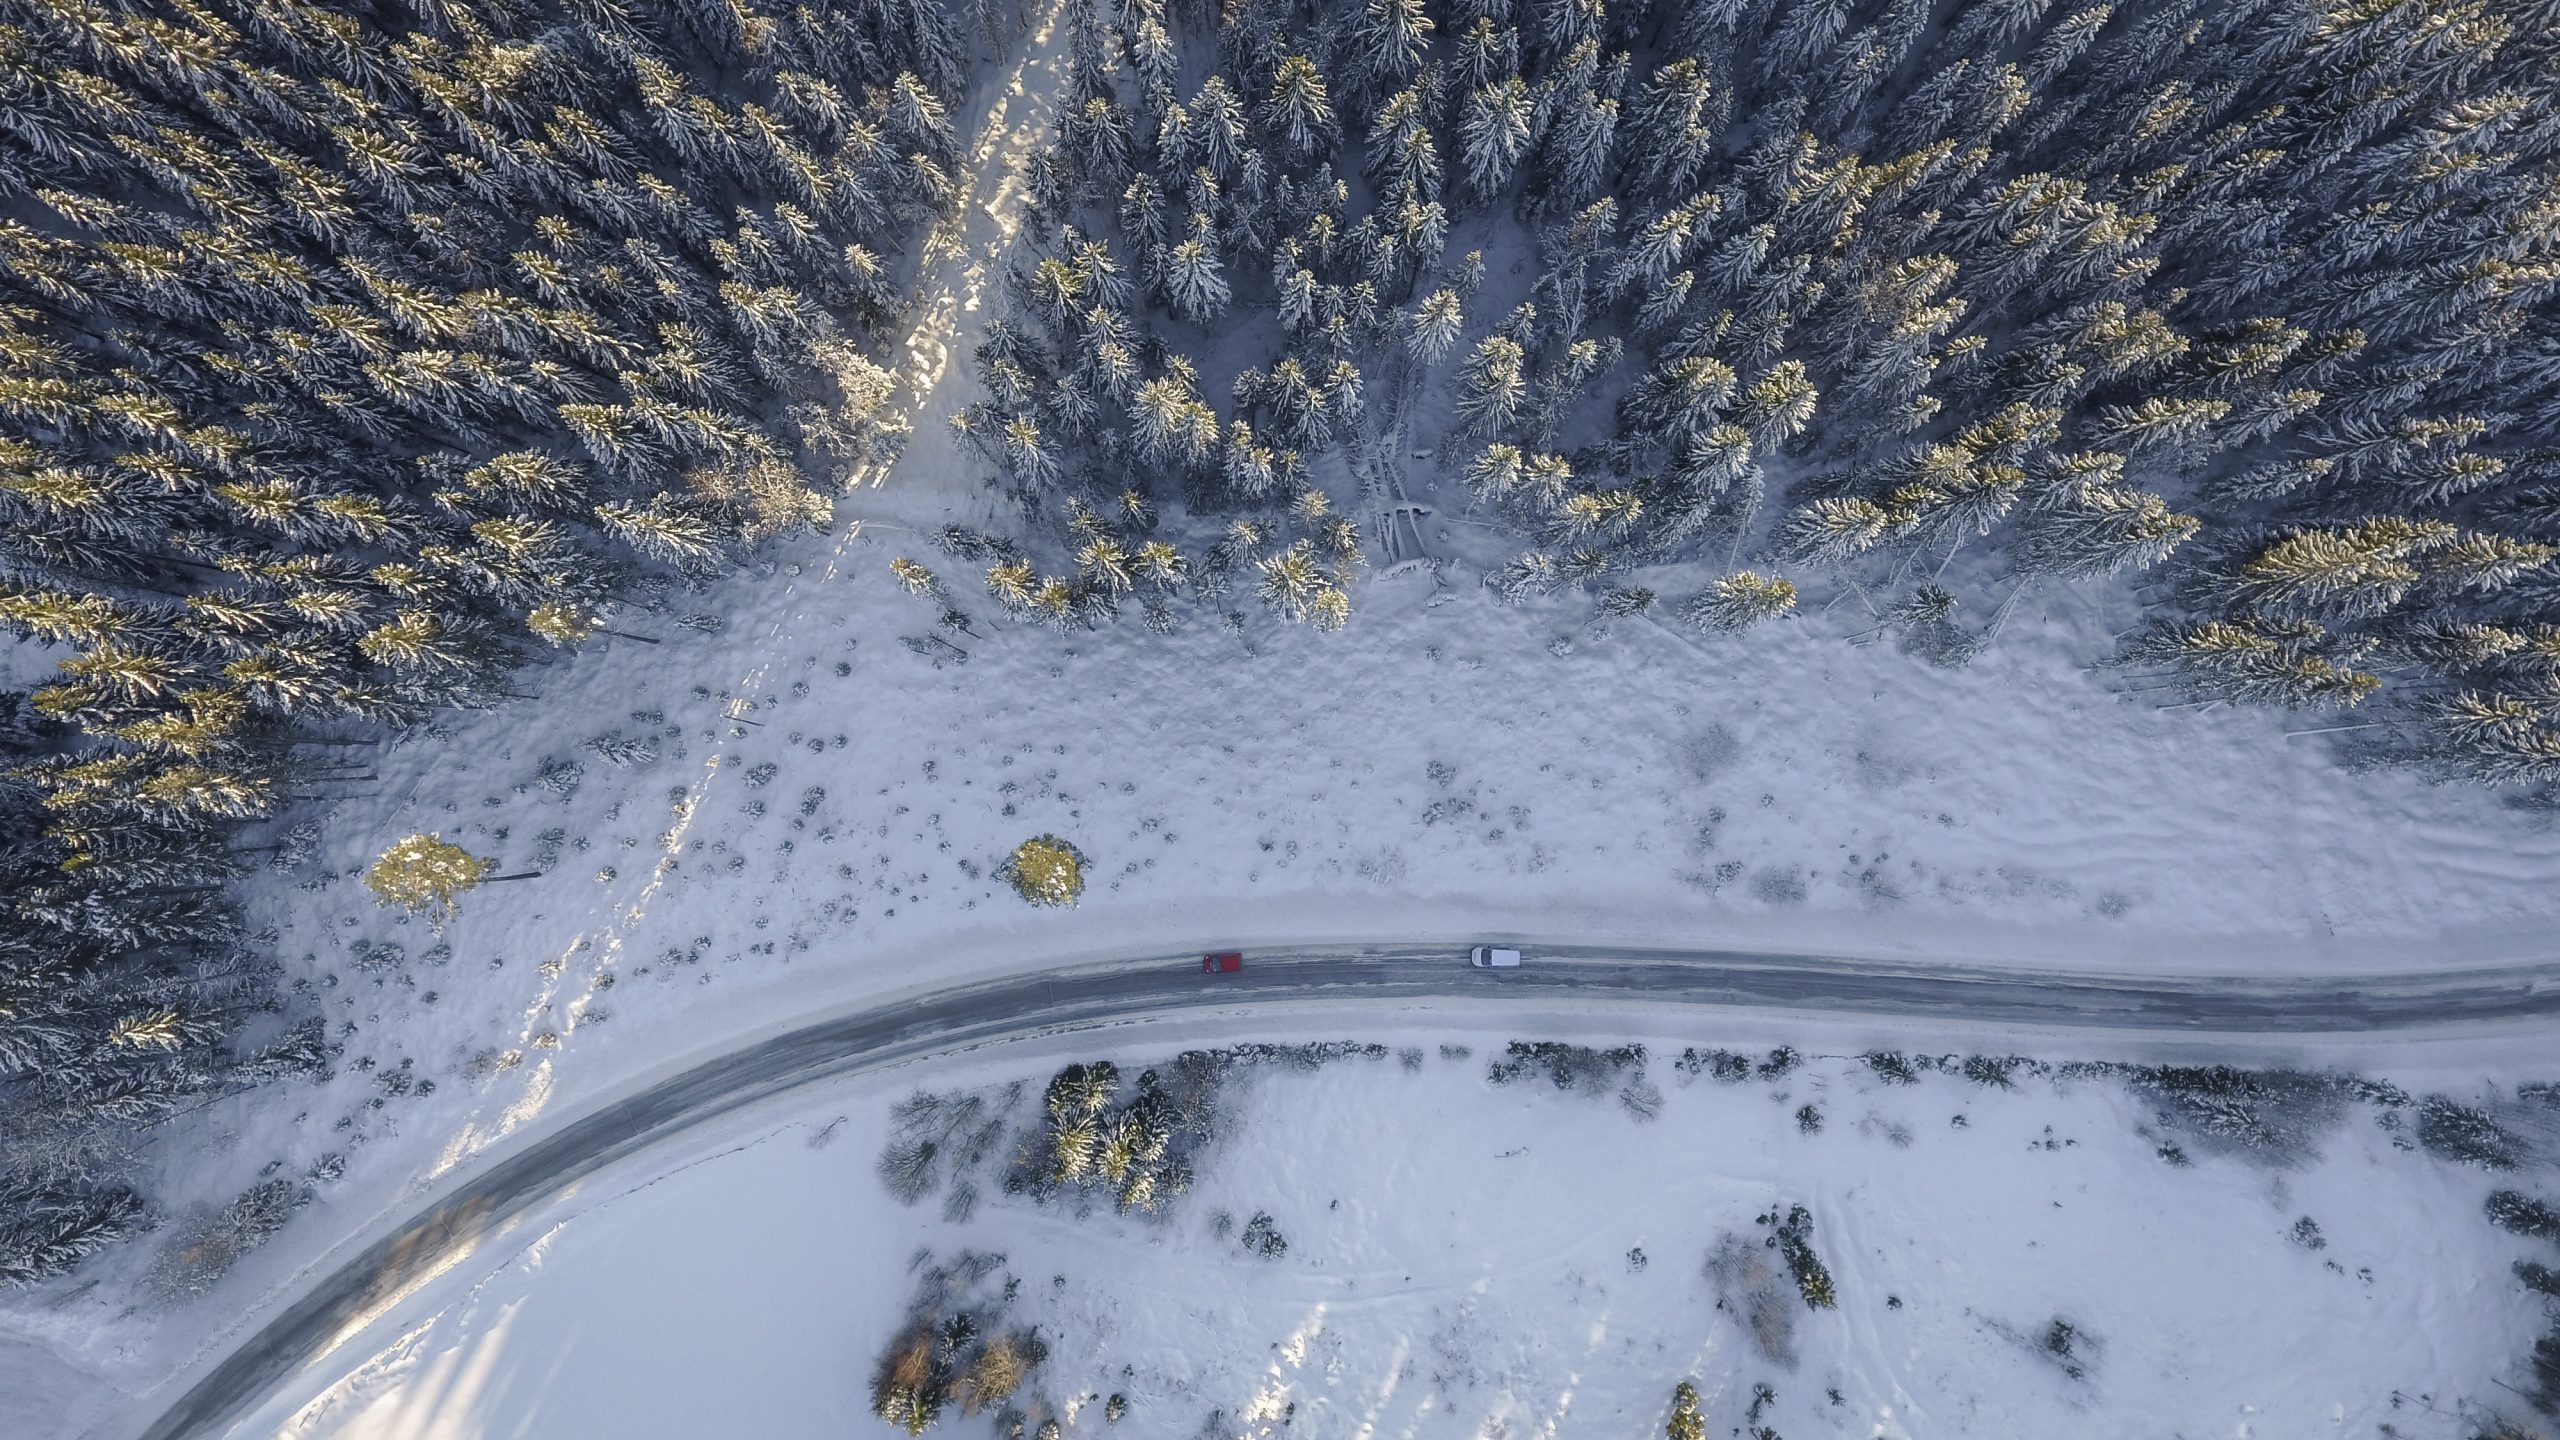 cars driving through snow covered trees, shot from drone